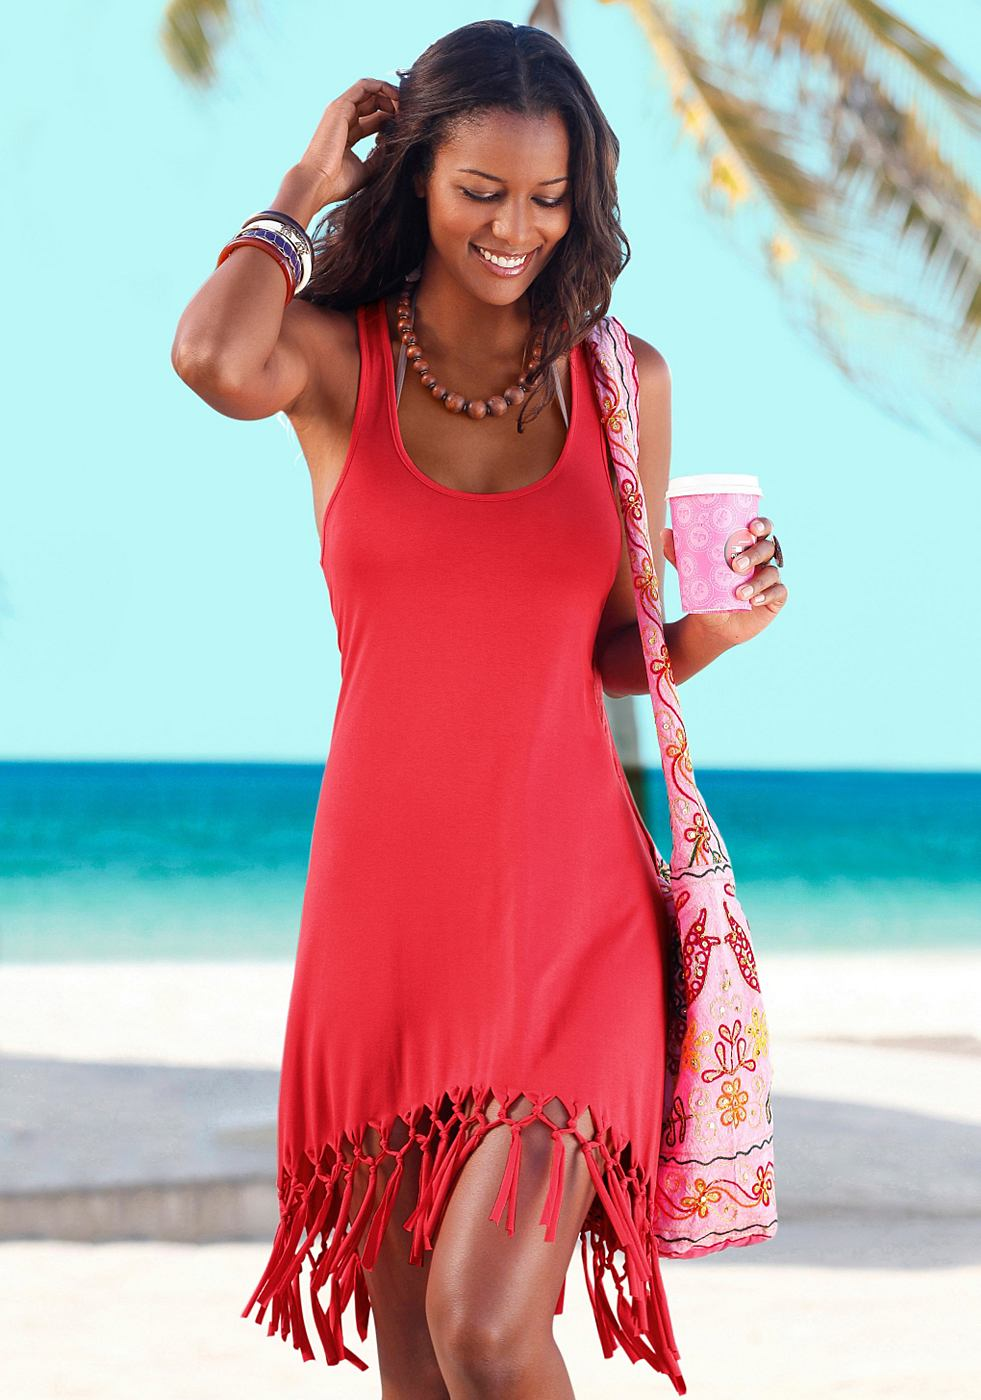 Beachtime Shirt in lang model rood